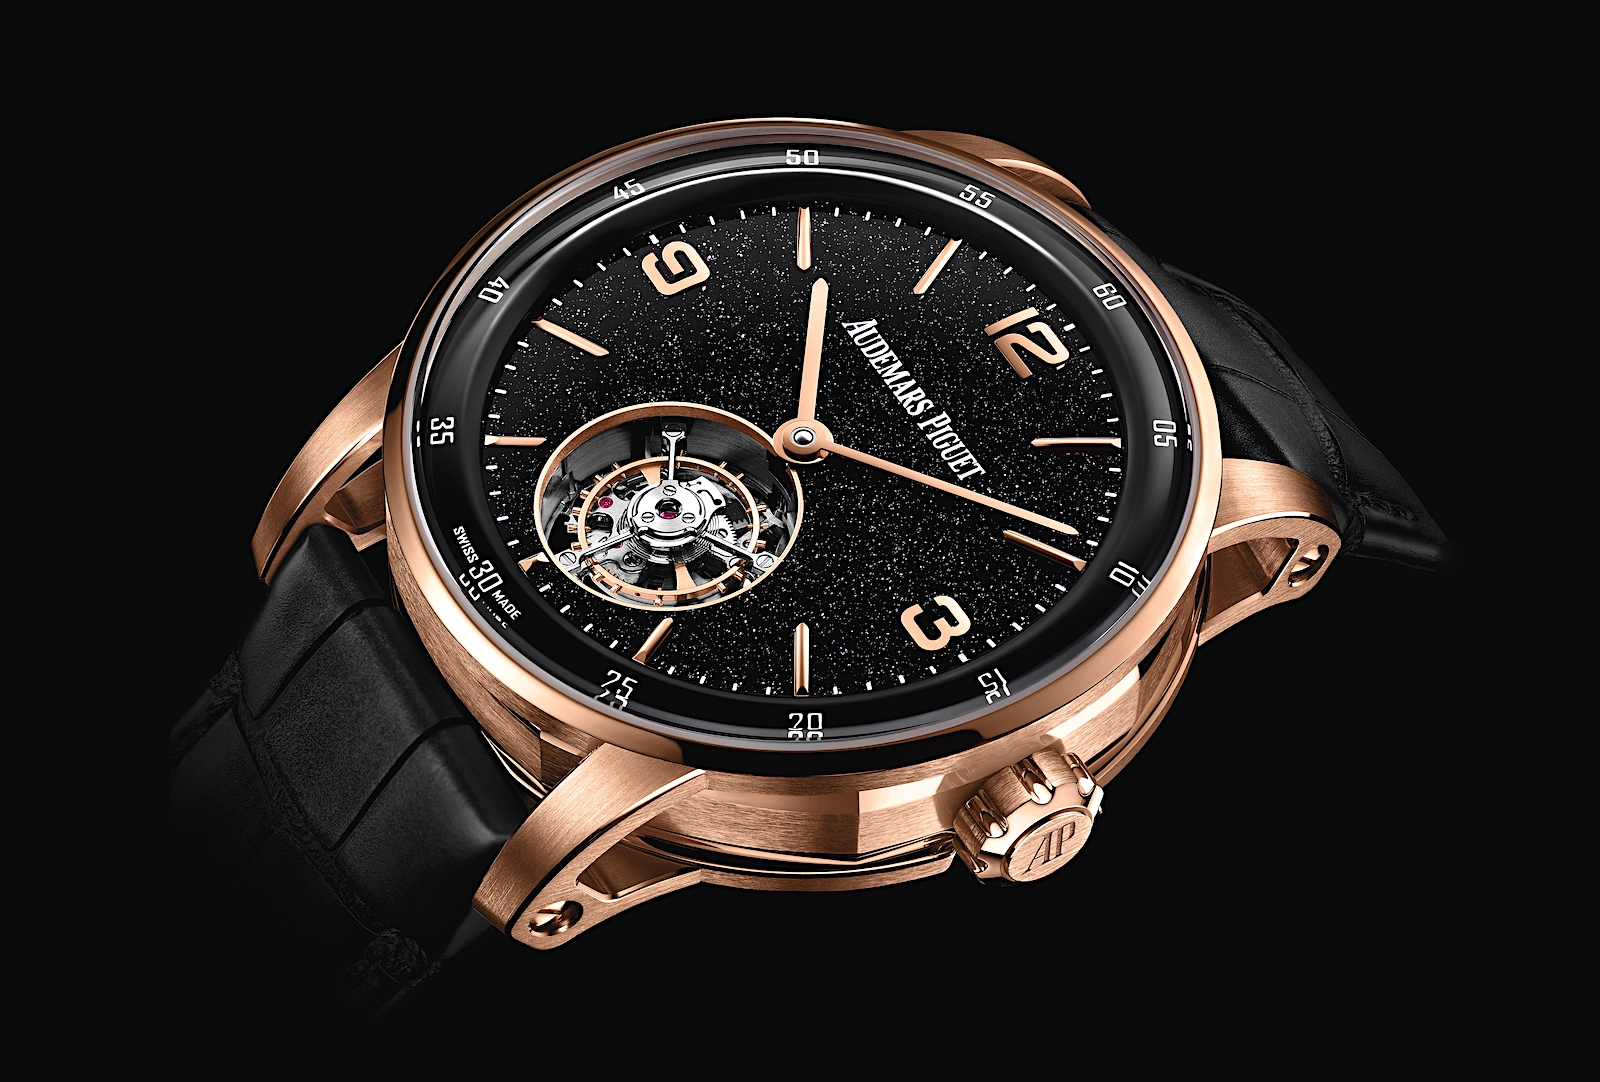 Audemars Piguet Code 11.59 Tourbillon Volant Automatic - rose gold